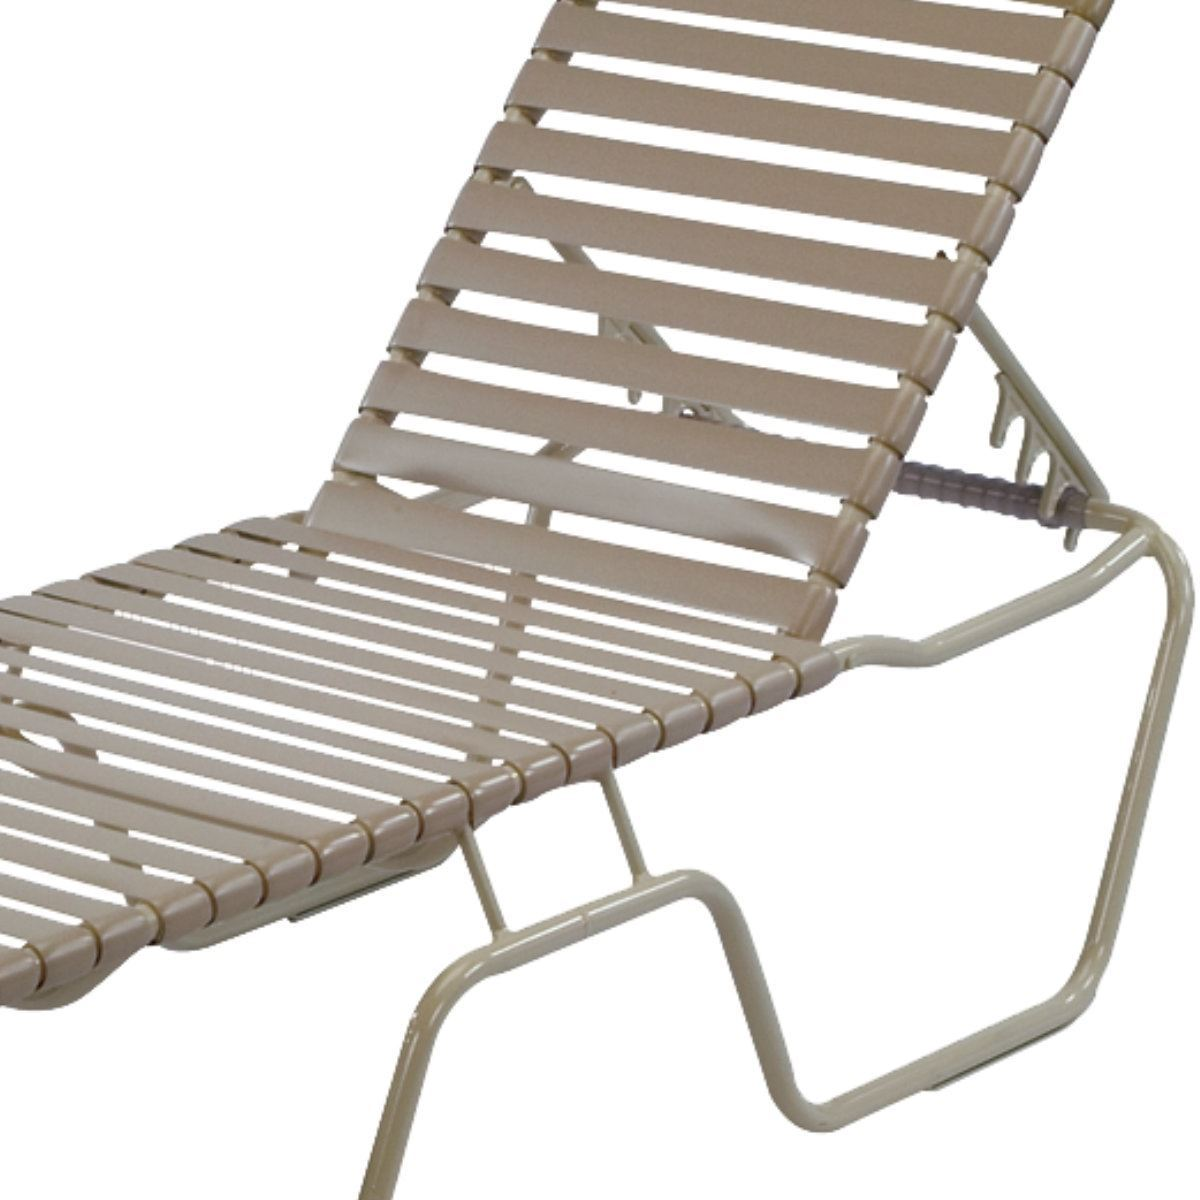 Vinyl Strap Commercial Chaise Lounge Commercial Pool